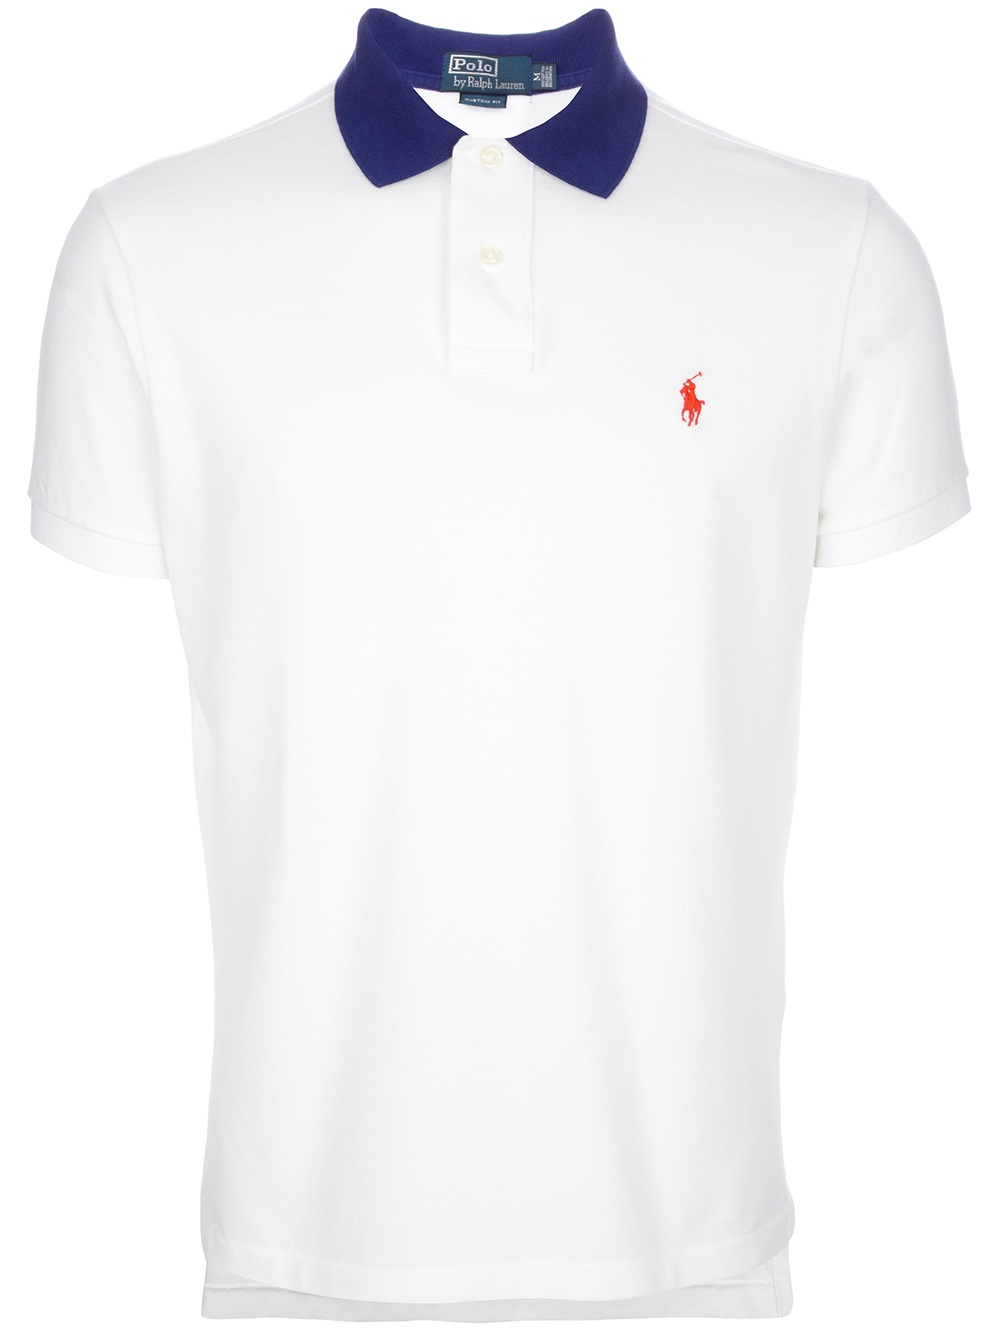 829be7b2570c8 ... where can i buy lyst polo ralph lauren contrast collar polo shirt in  white for men